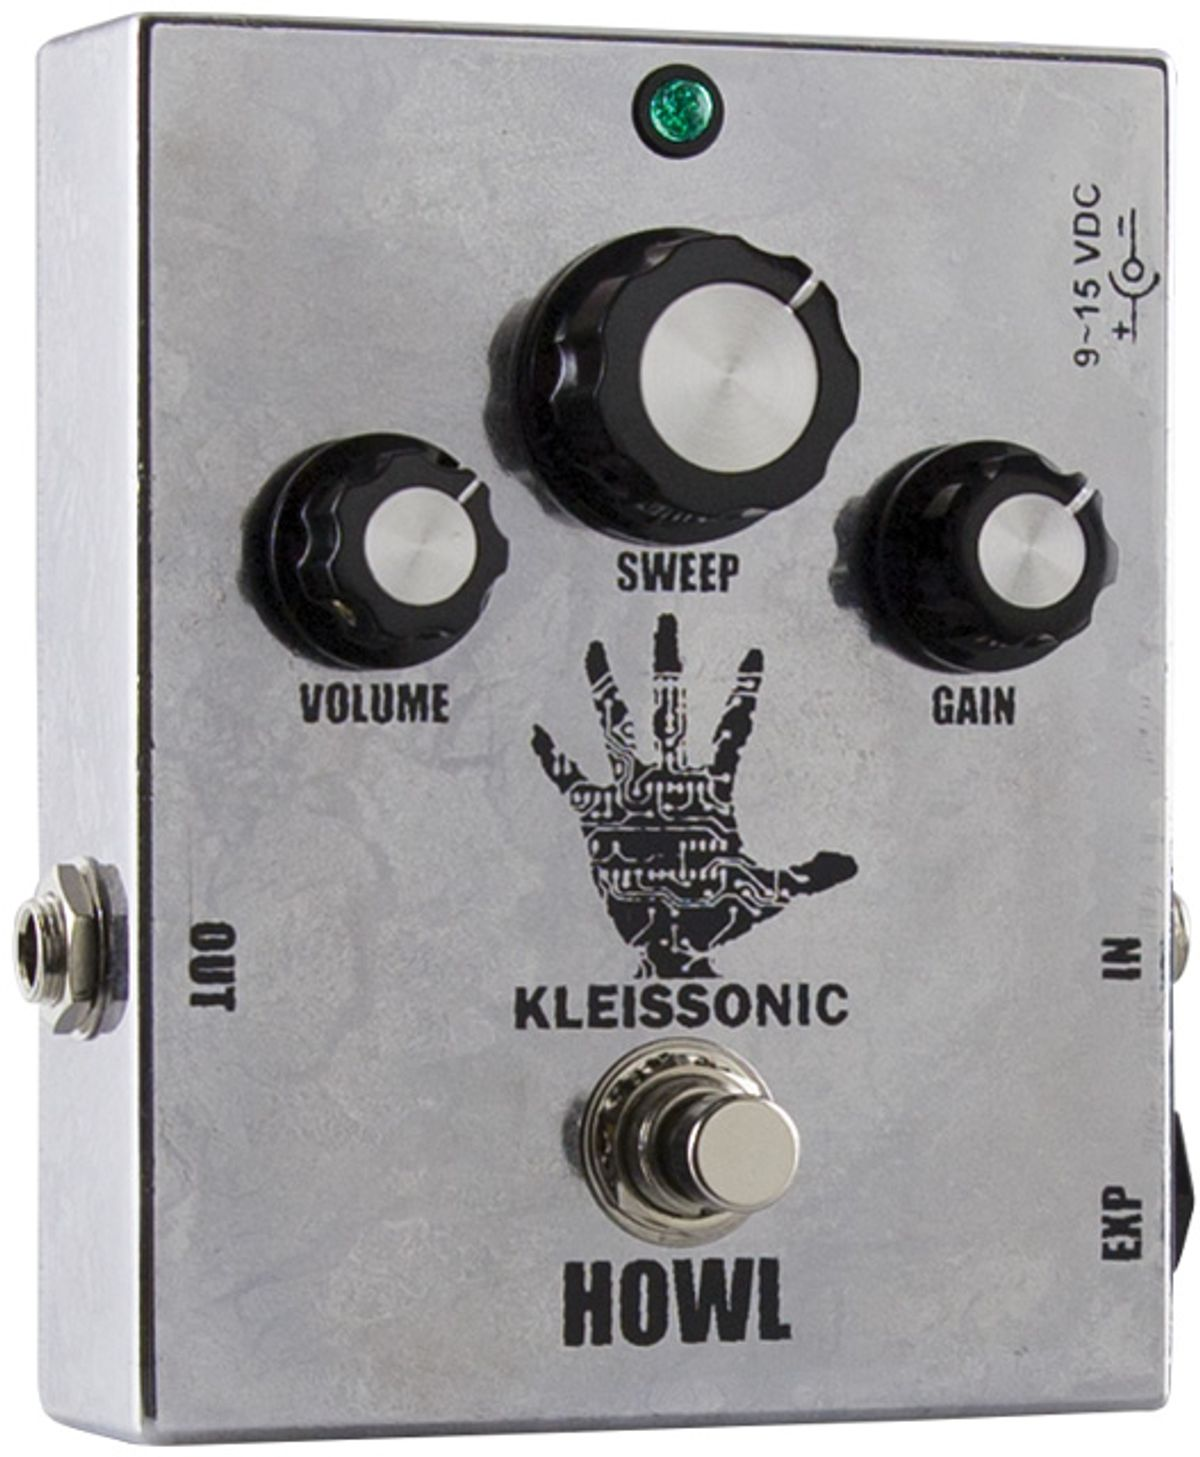 Kleissonic Howl Review